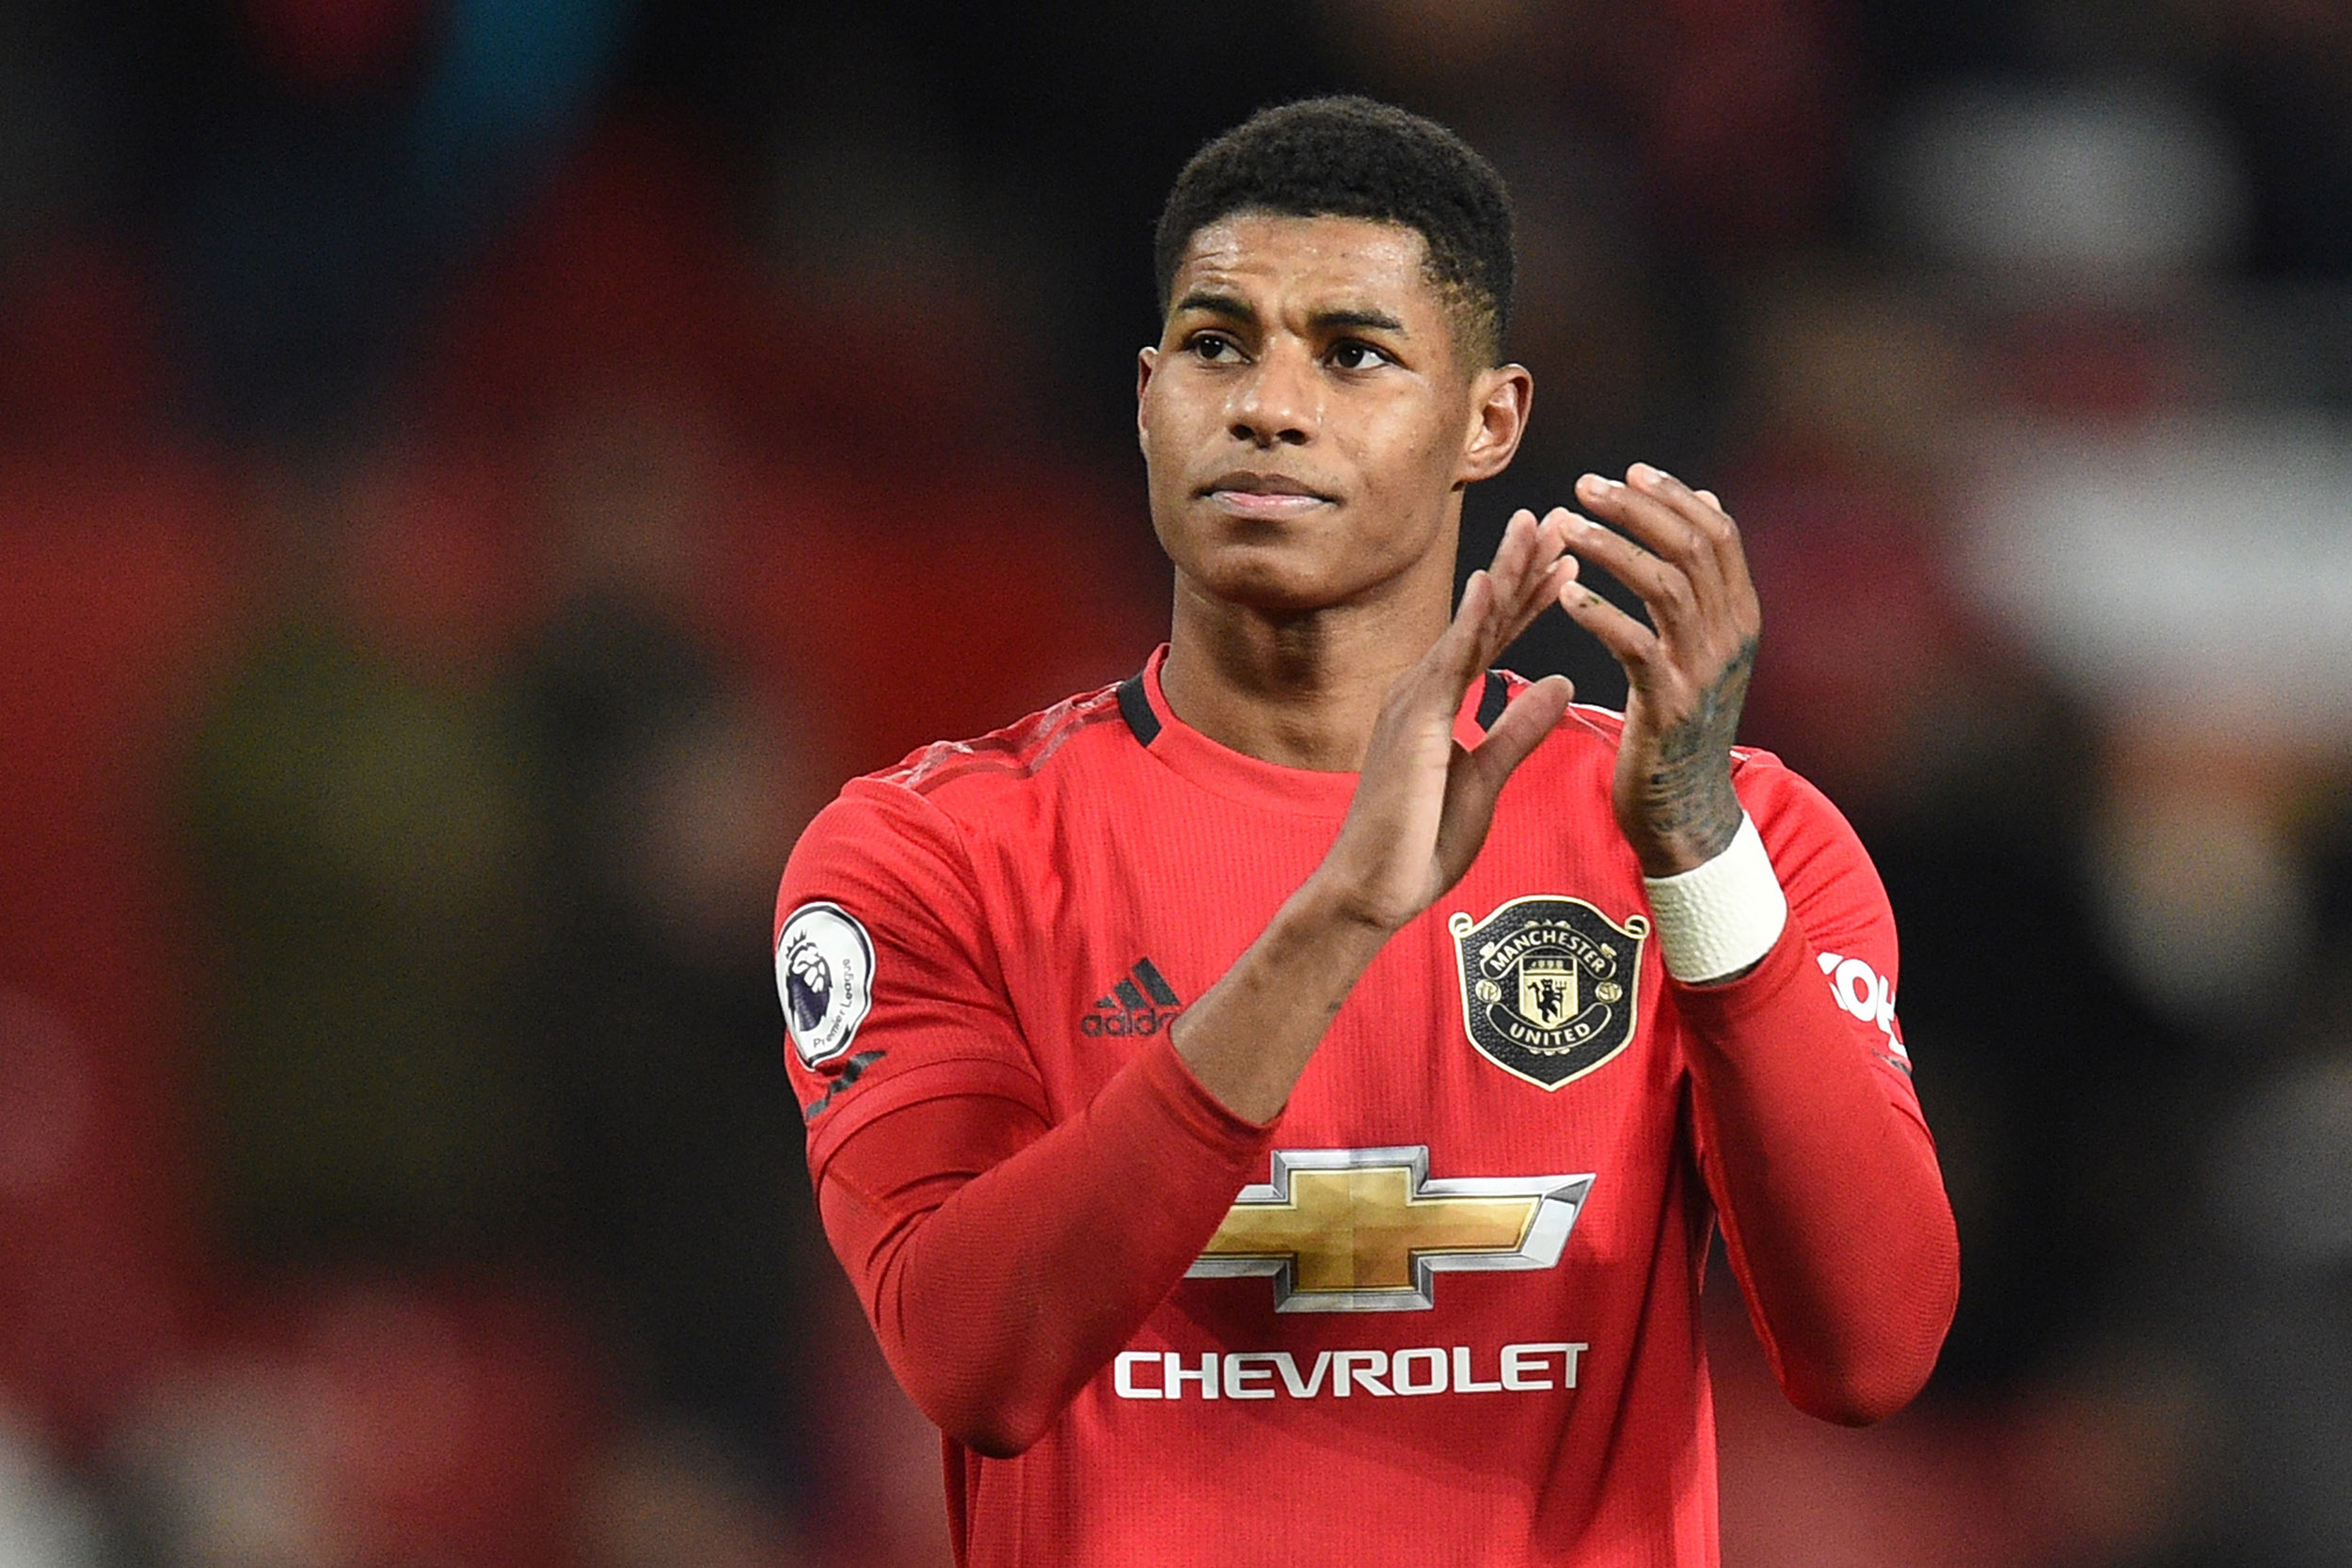 Man United great Yorke thinks Rashford can rival Mbappe, but only if he's allowed to develop as a No. 9 - Bóng Đá